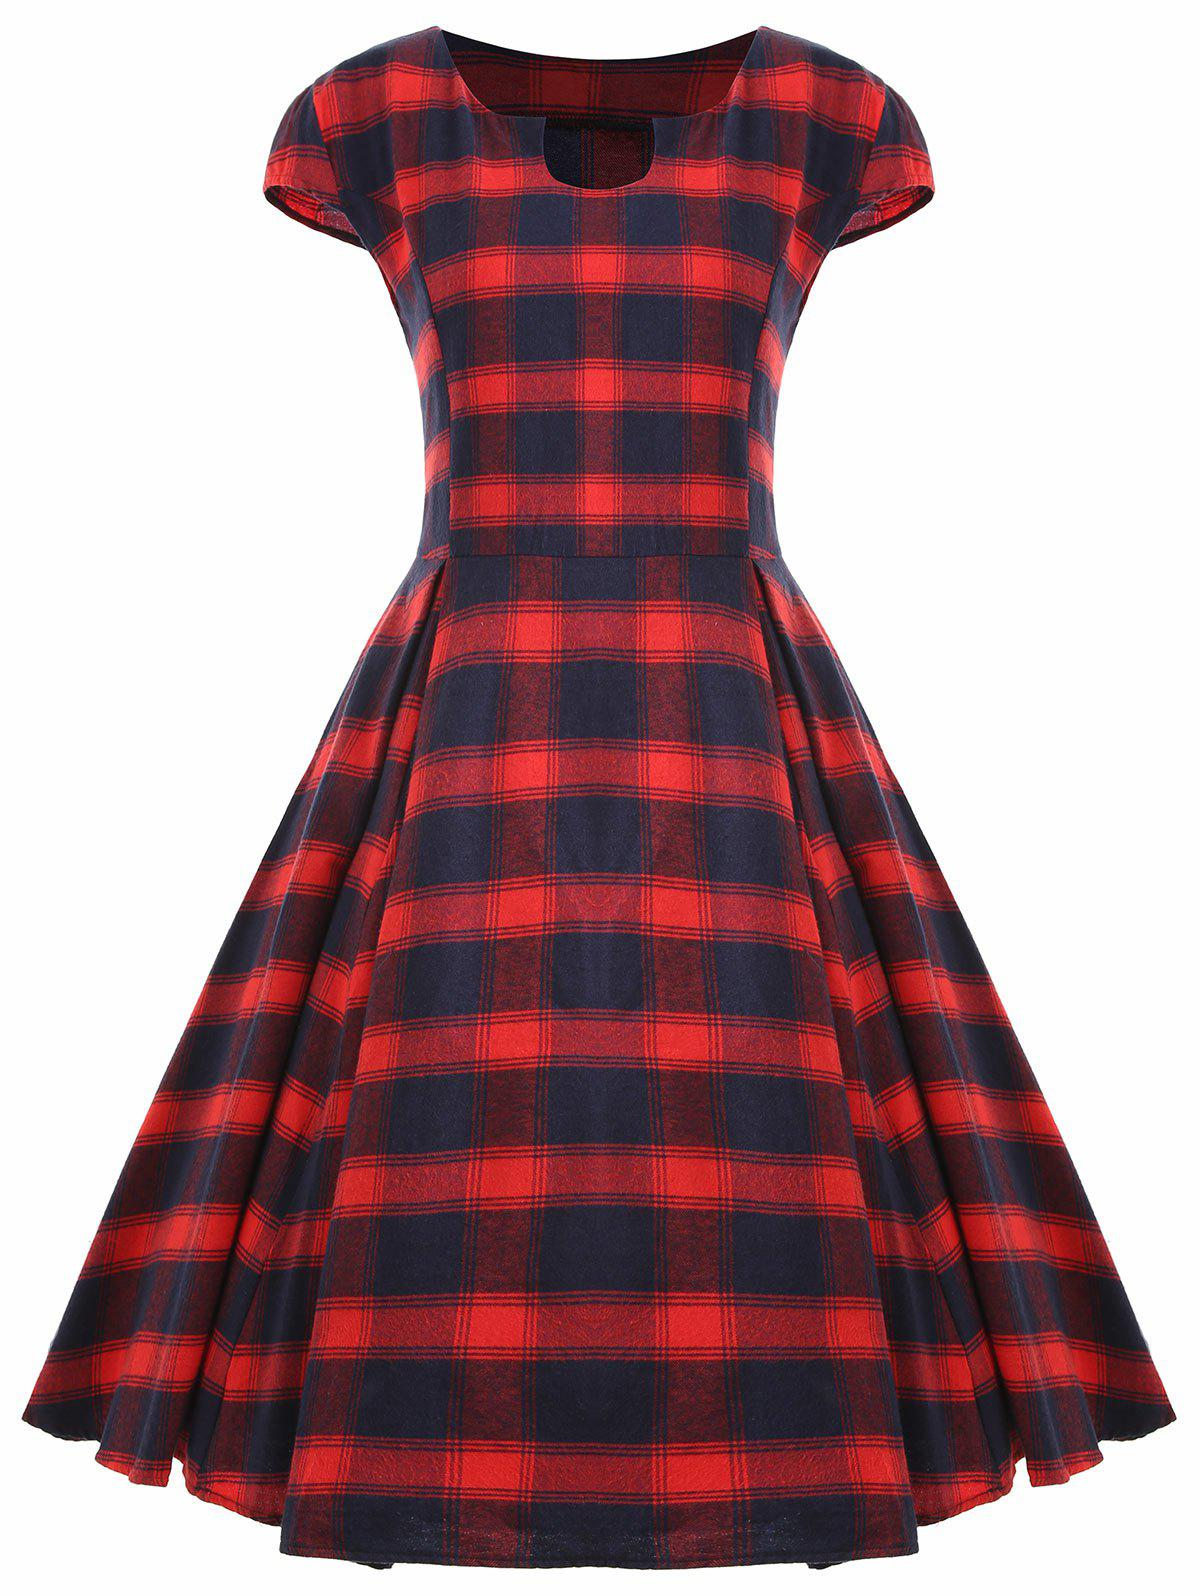 Chic Vintage Plaid Cap Sleeve Plus Size Dress